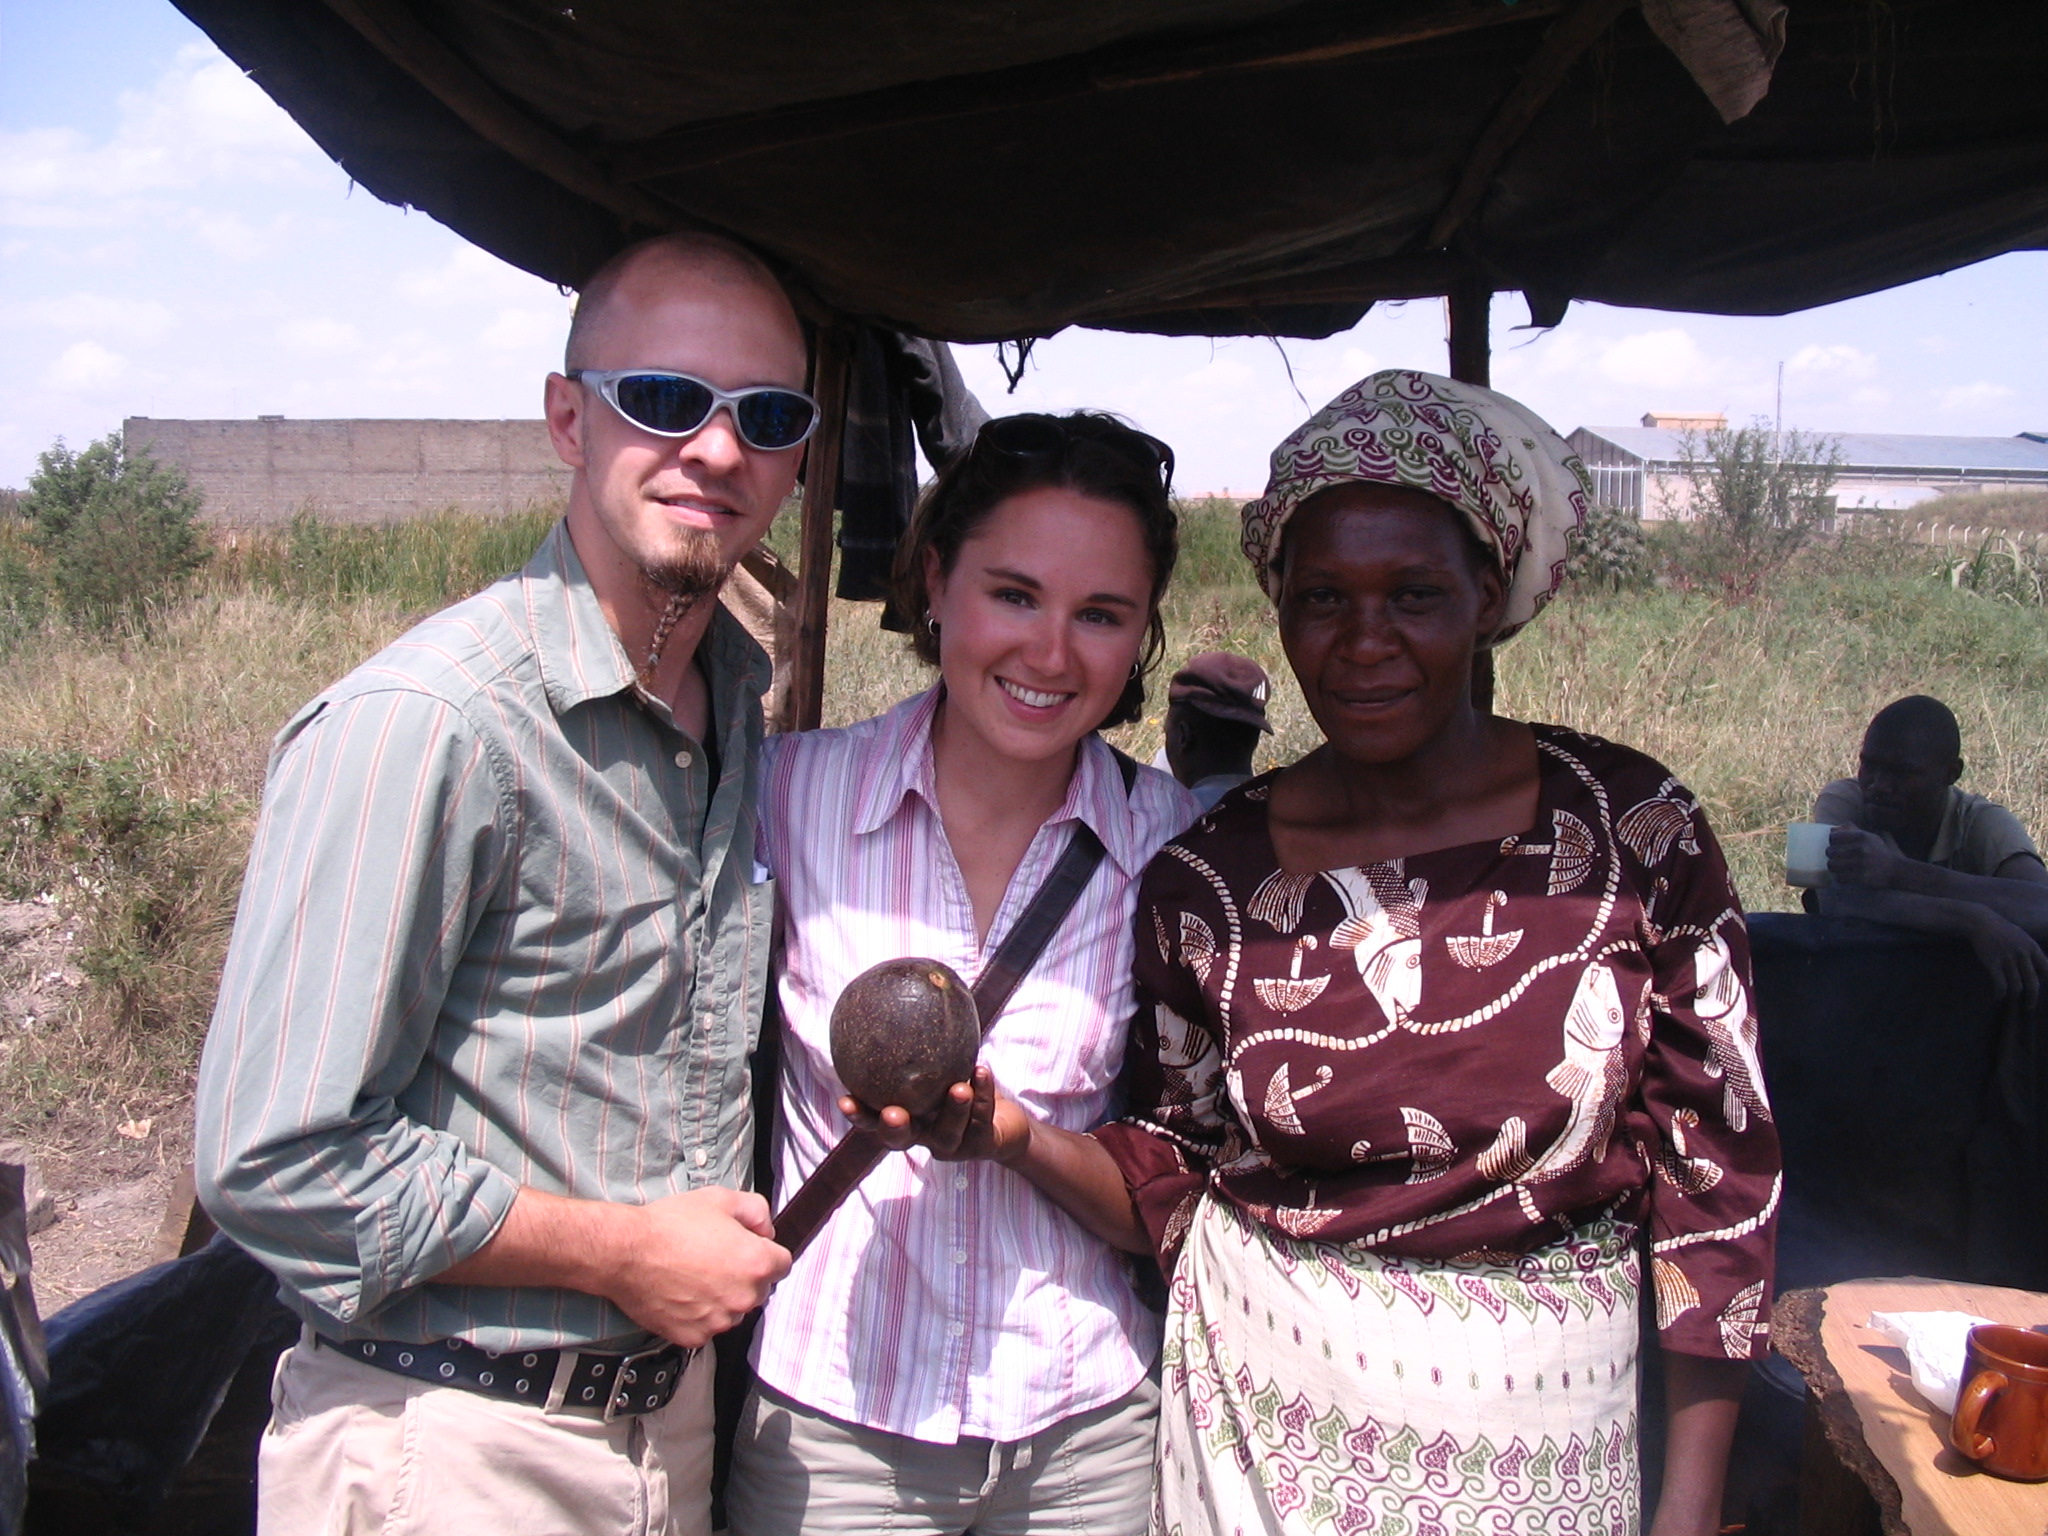 Kate and her husband with a woman in Kenya